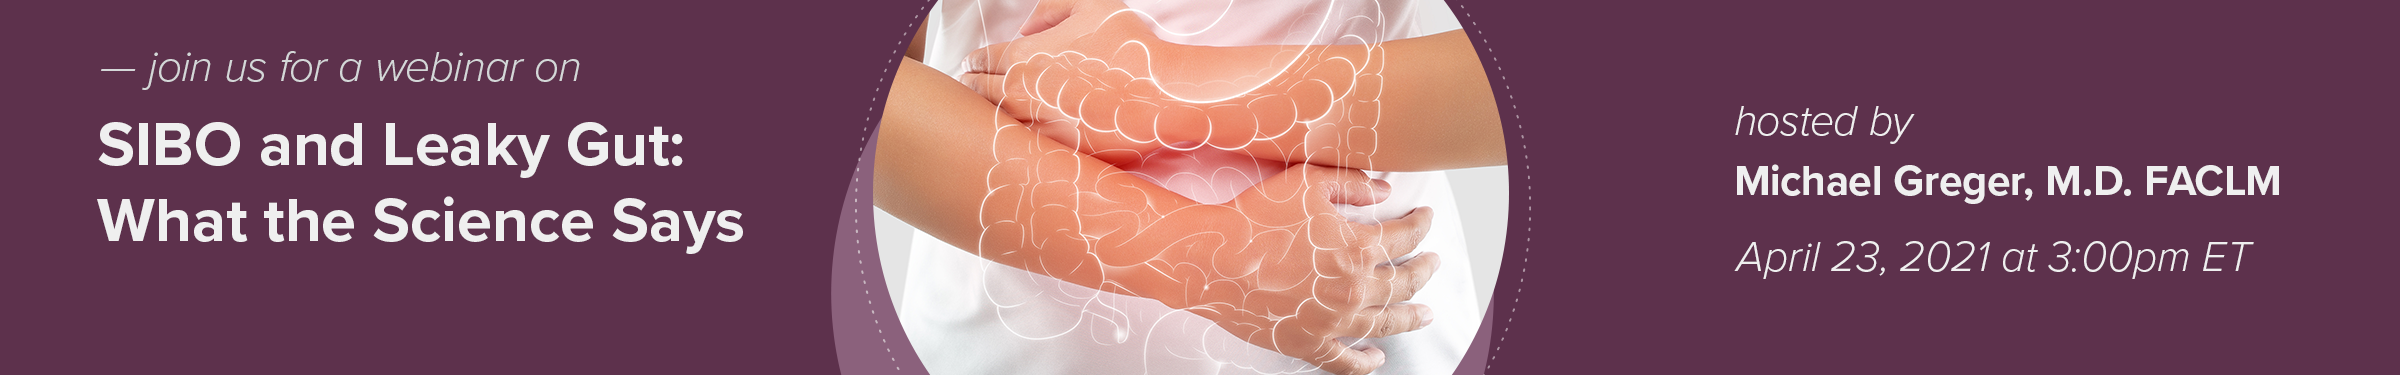 SIBO and Leaky Gut: What the Science Says